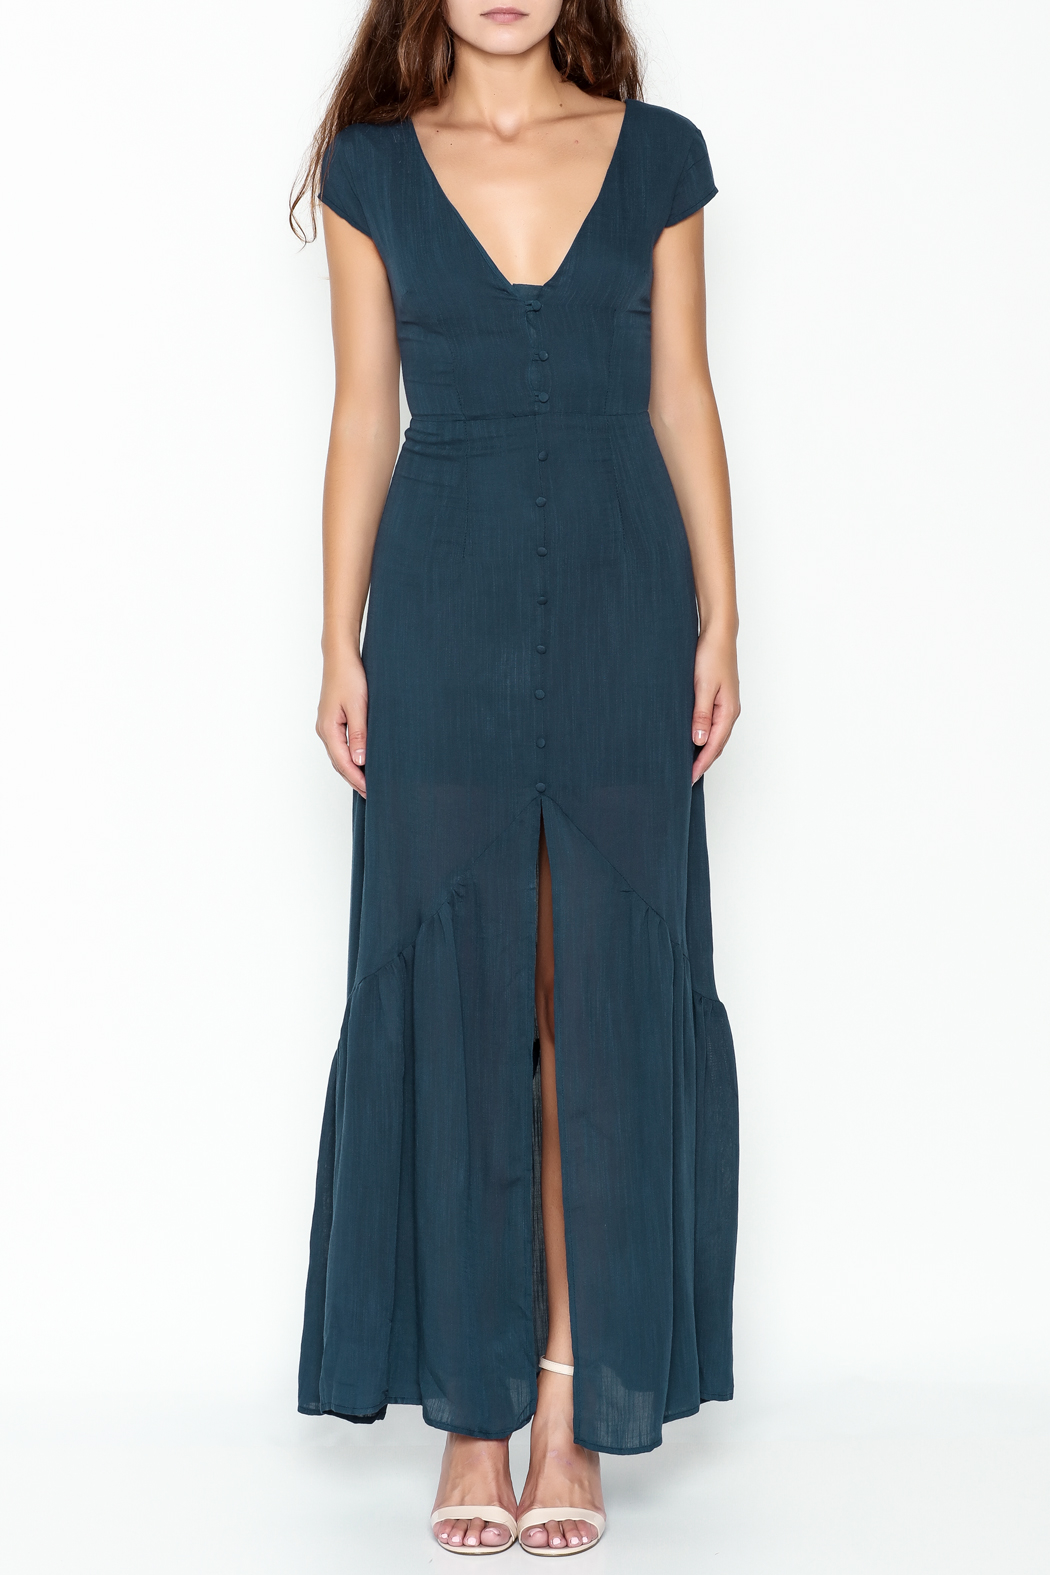 CALS Button Down Maxi Dress - Front Full Image